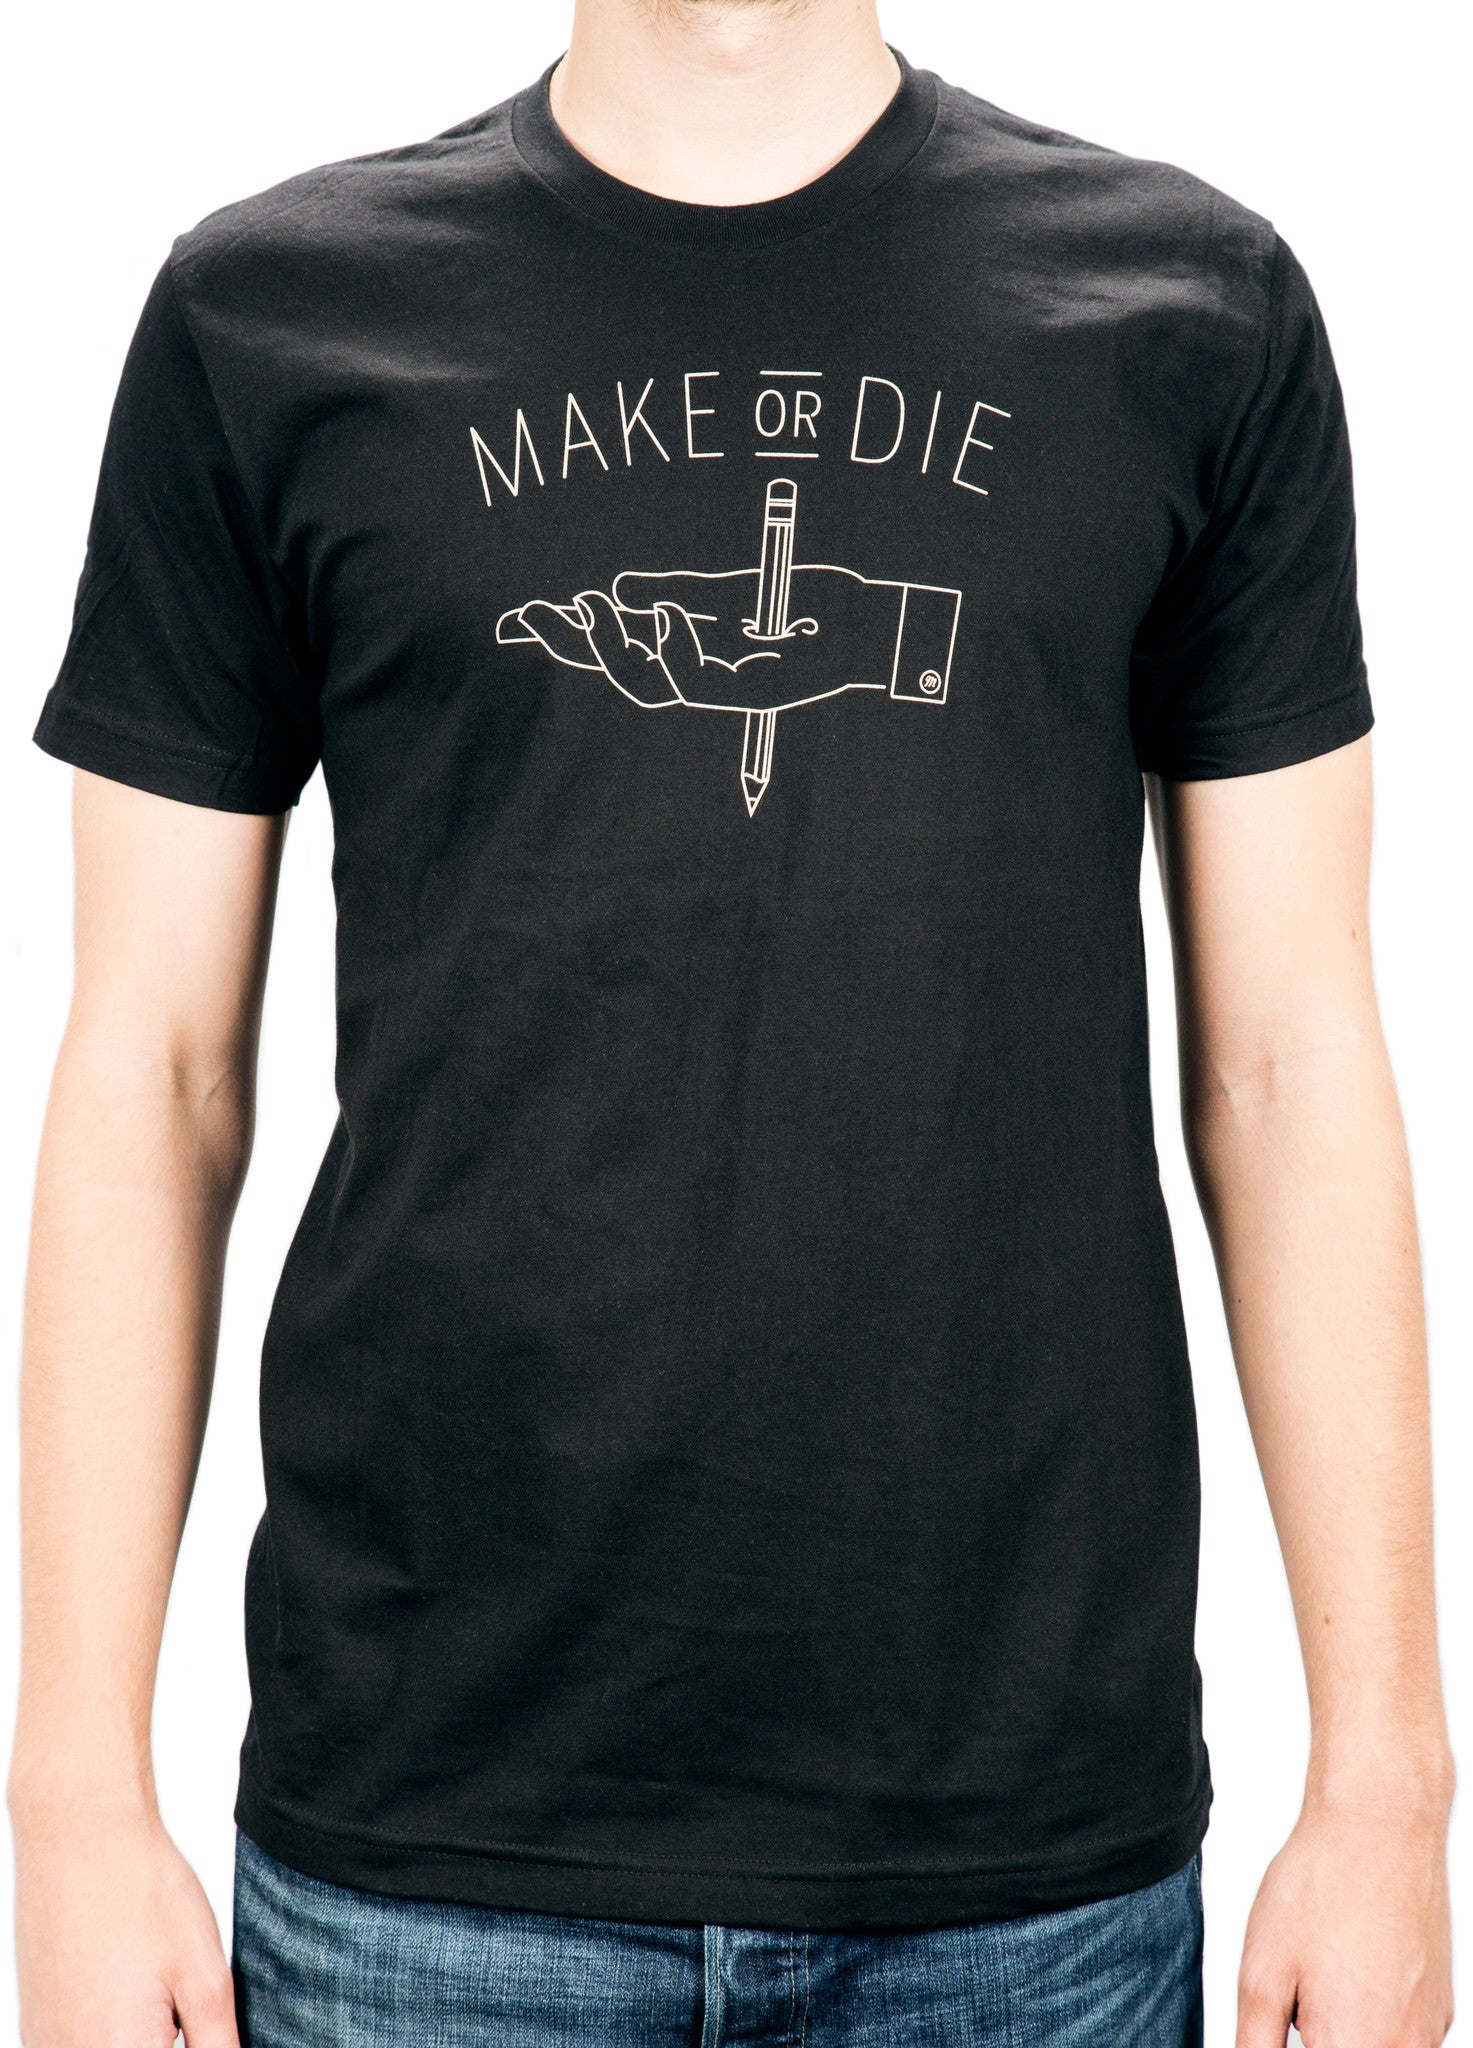 Make or Die T-shirt - Crew Neck